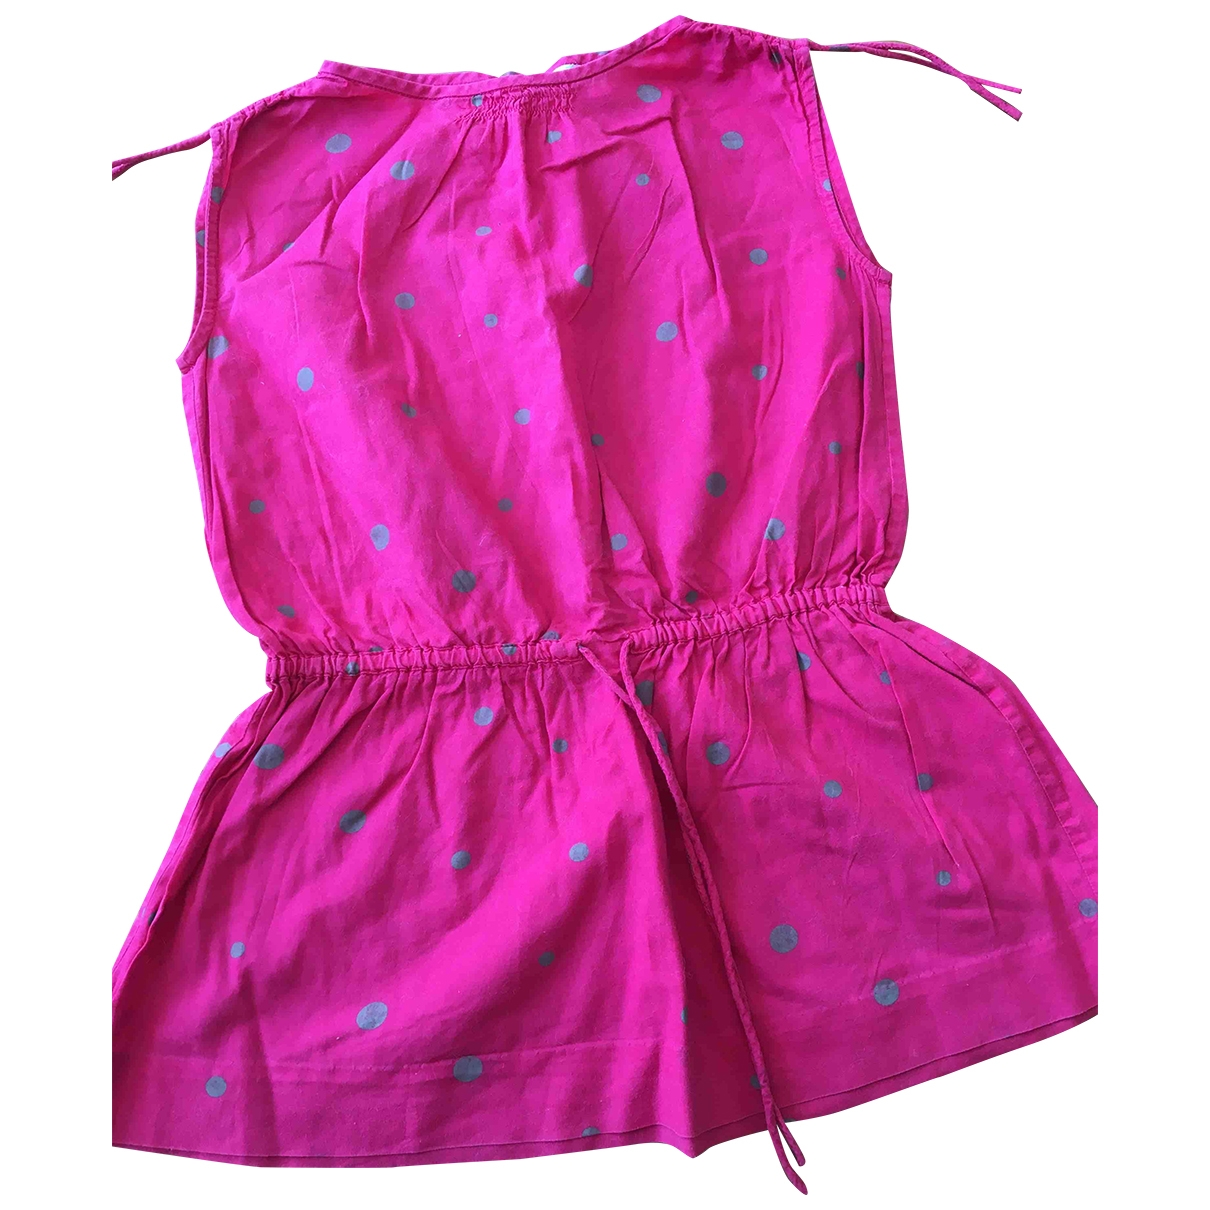 Bonpoint \N Pink Cotton dress for Kids 3 years - up to 98cm FR